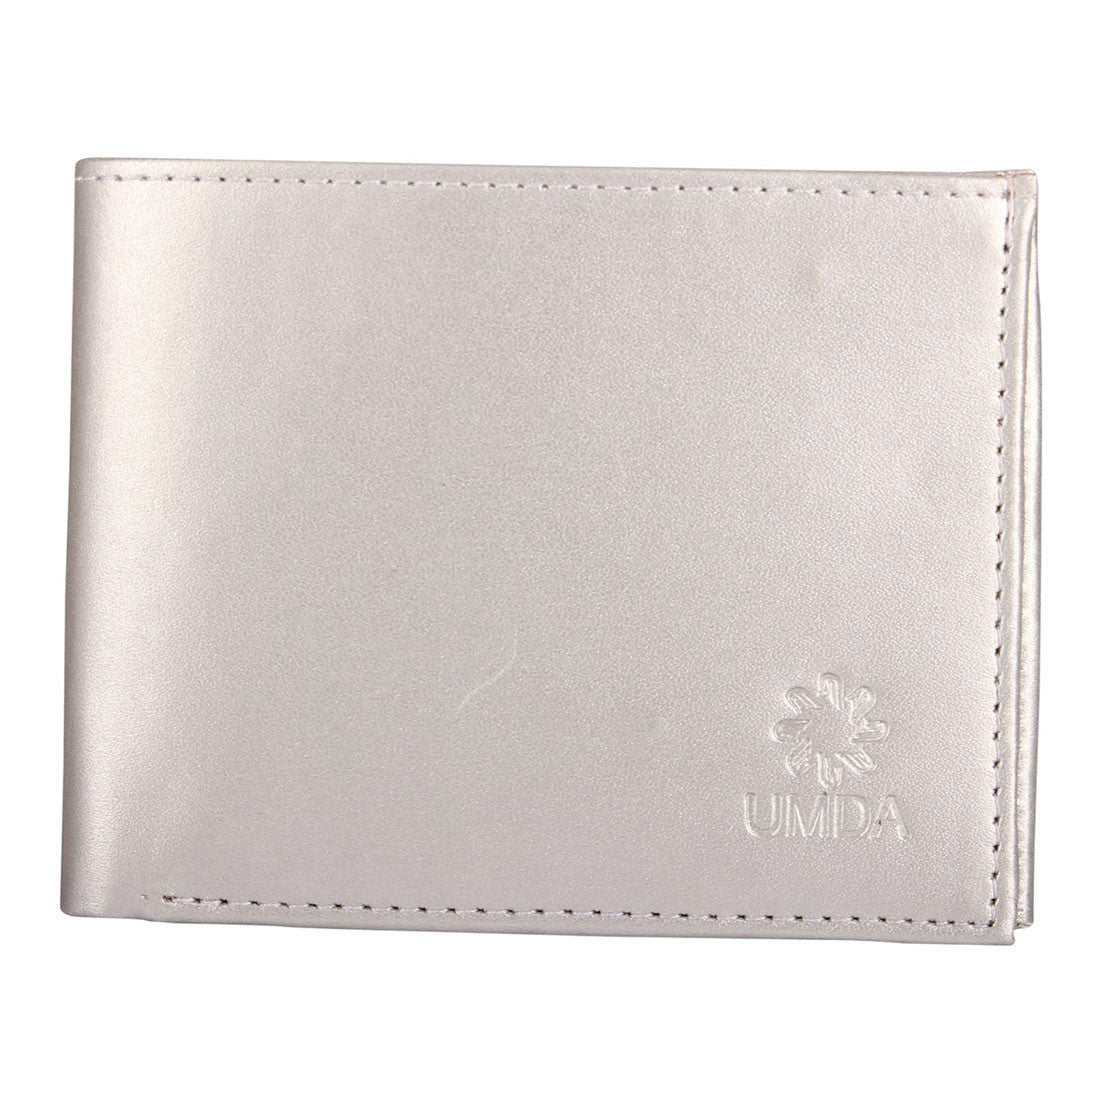 Men's Wallet (NPGW201-SL)